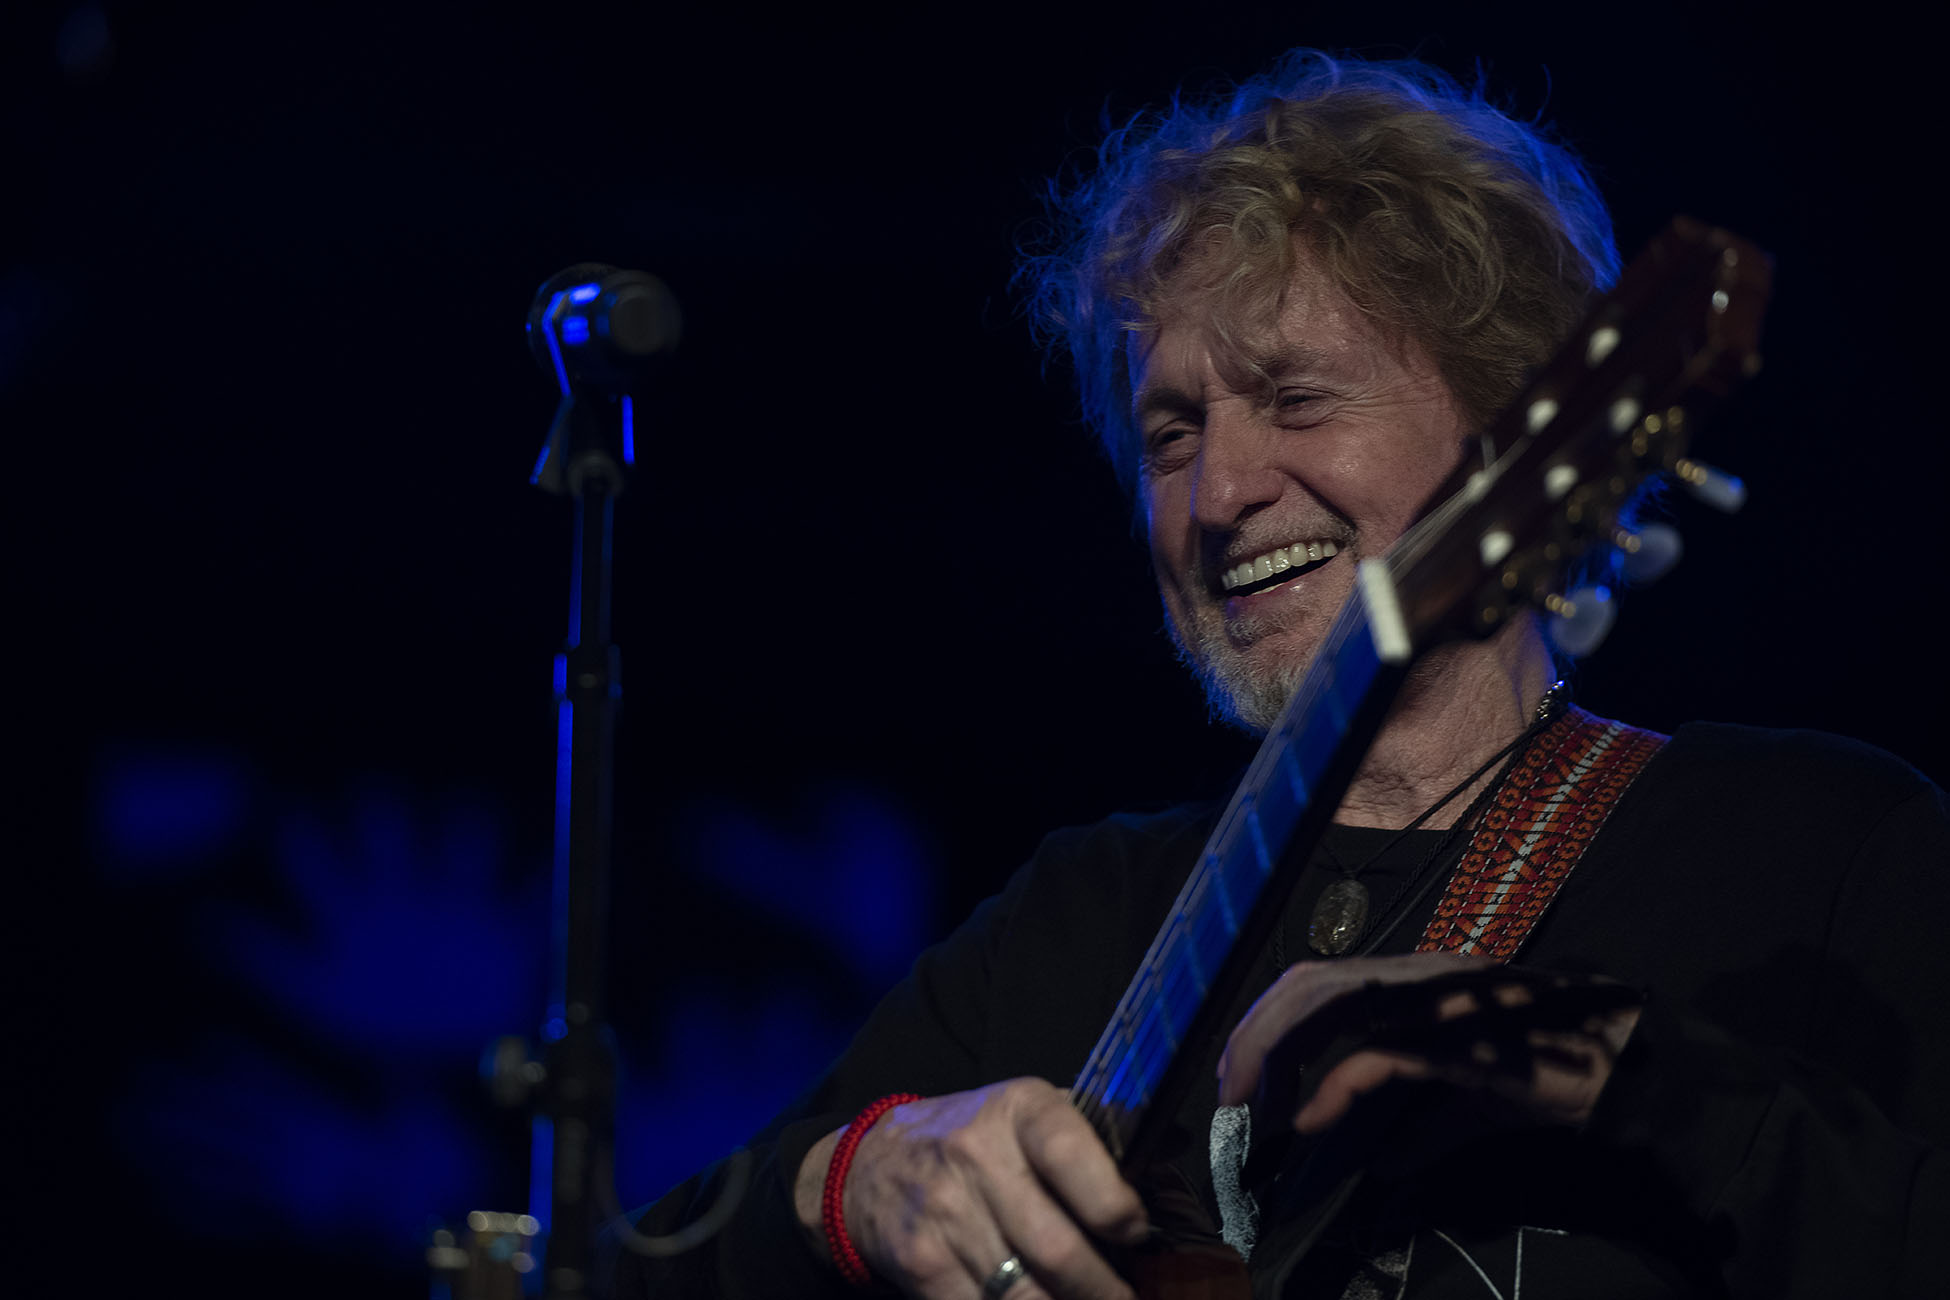 Jon Anderson at the Tupelo Music Hall, April 7, 2019